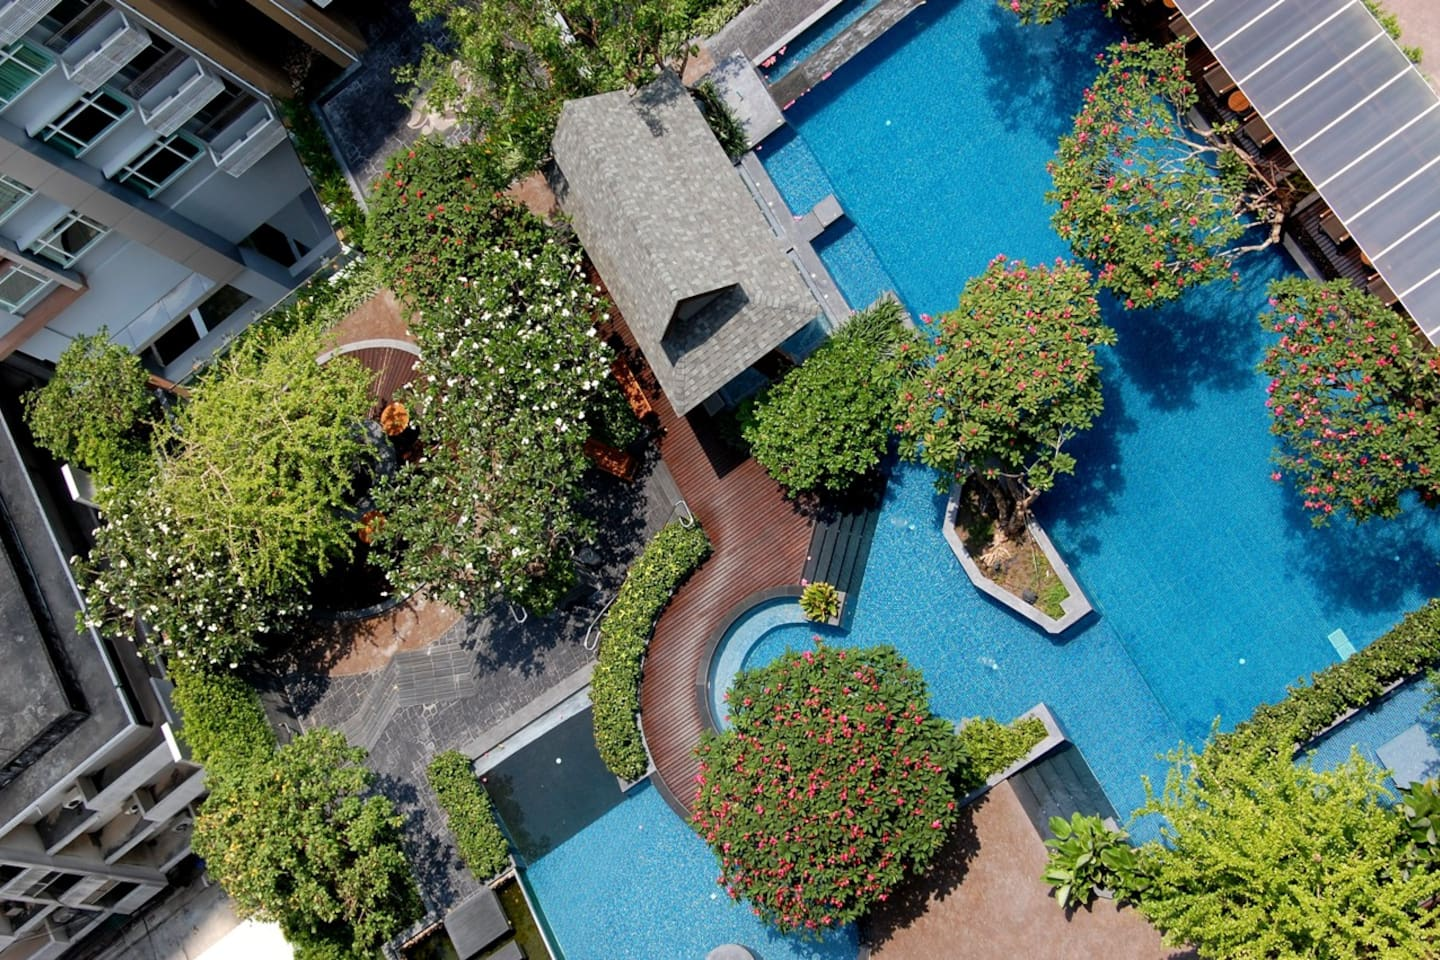 View of your swimming pool from living room balcony.